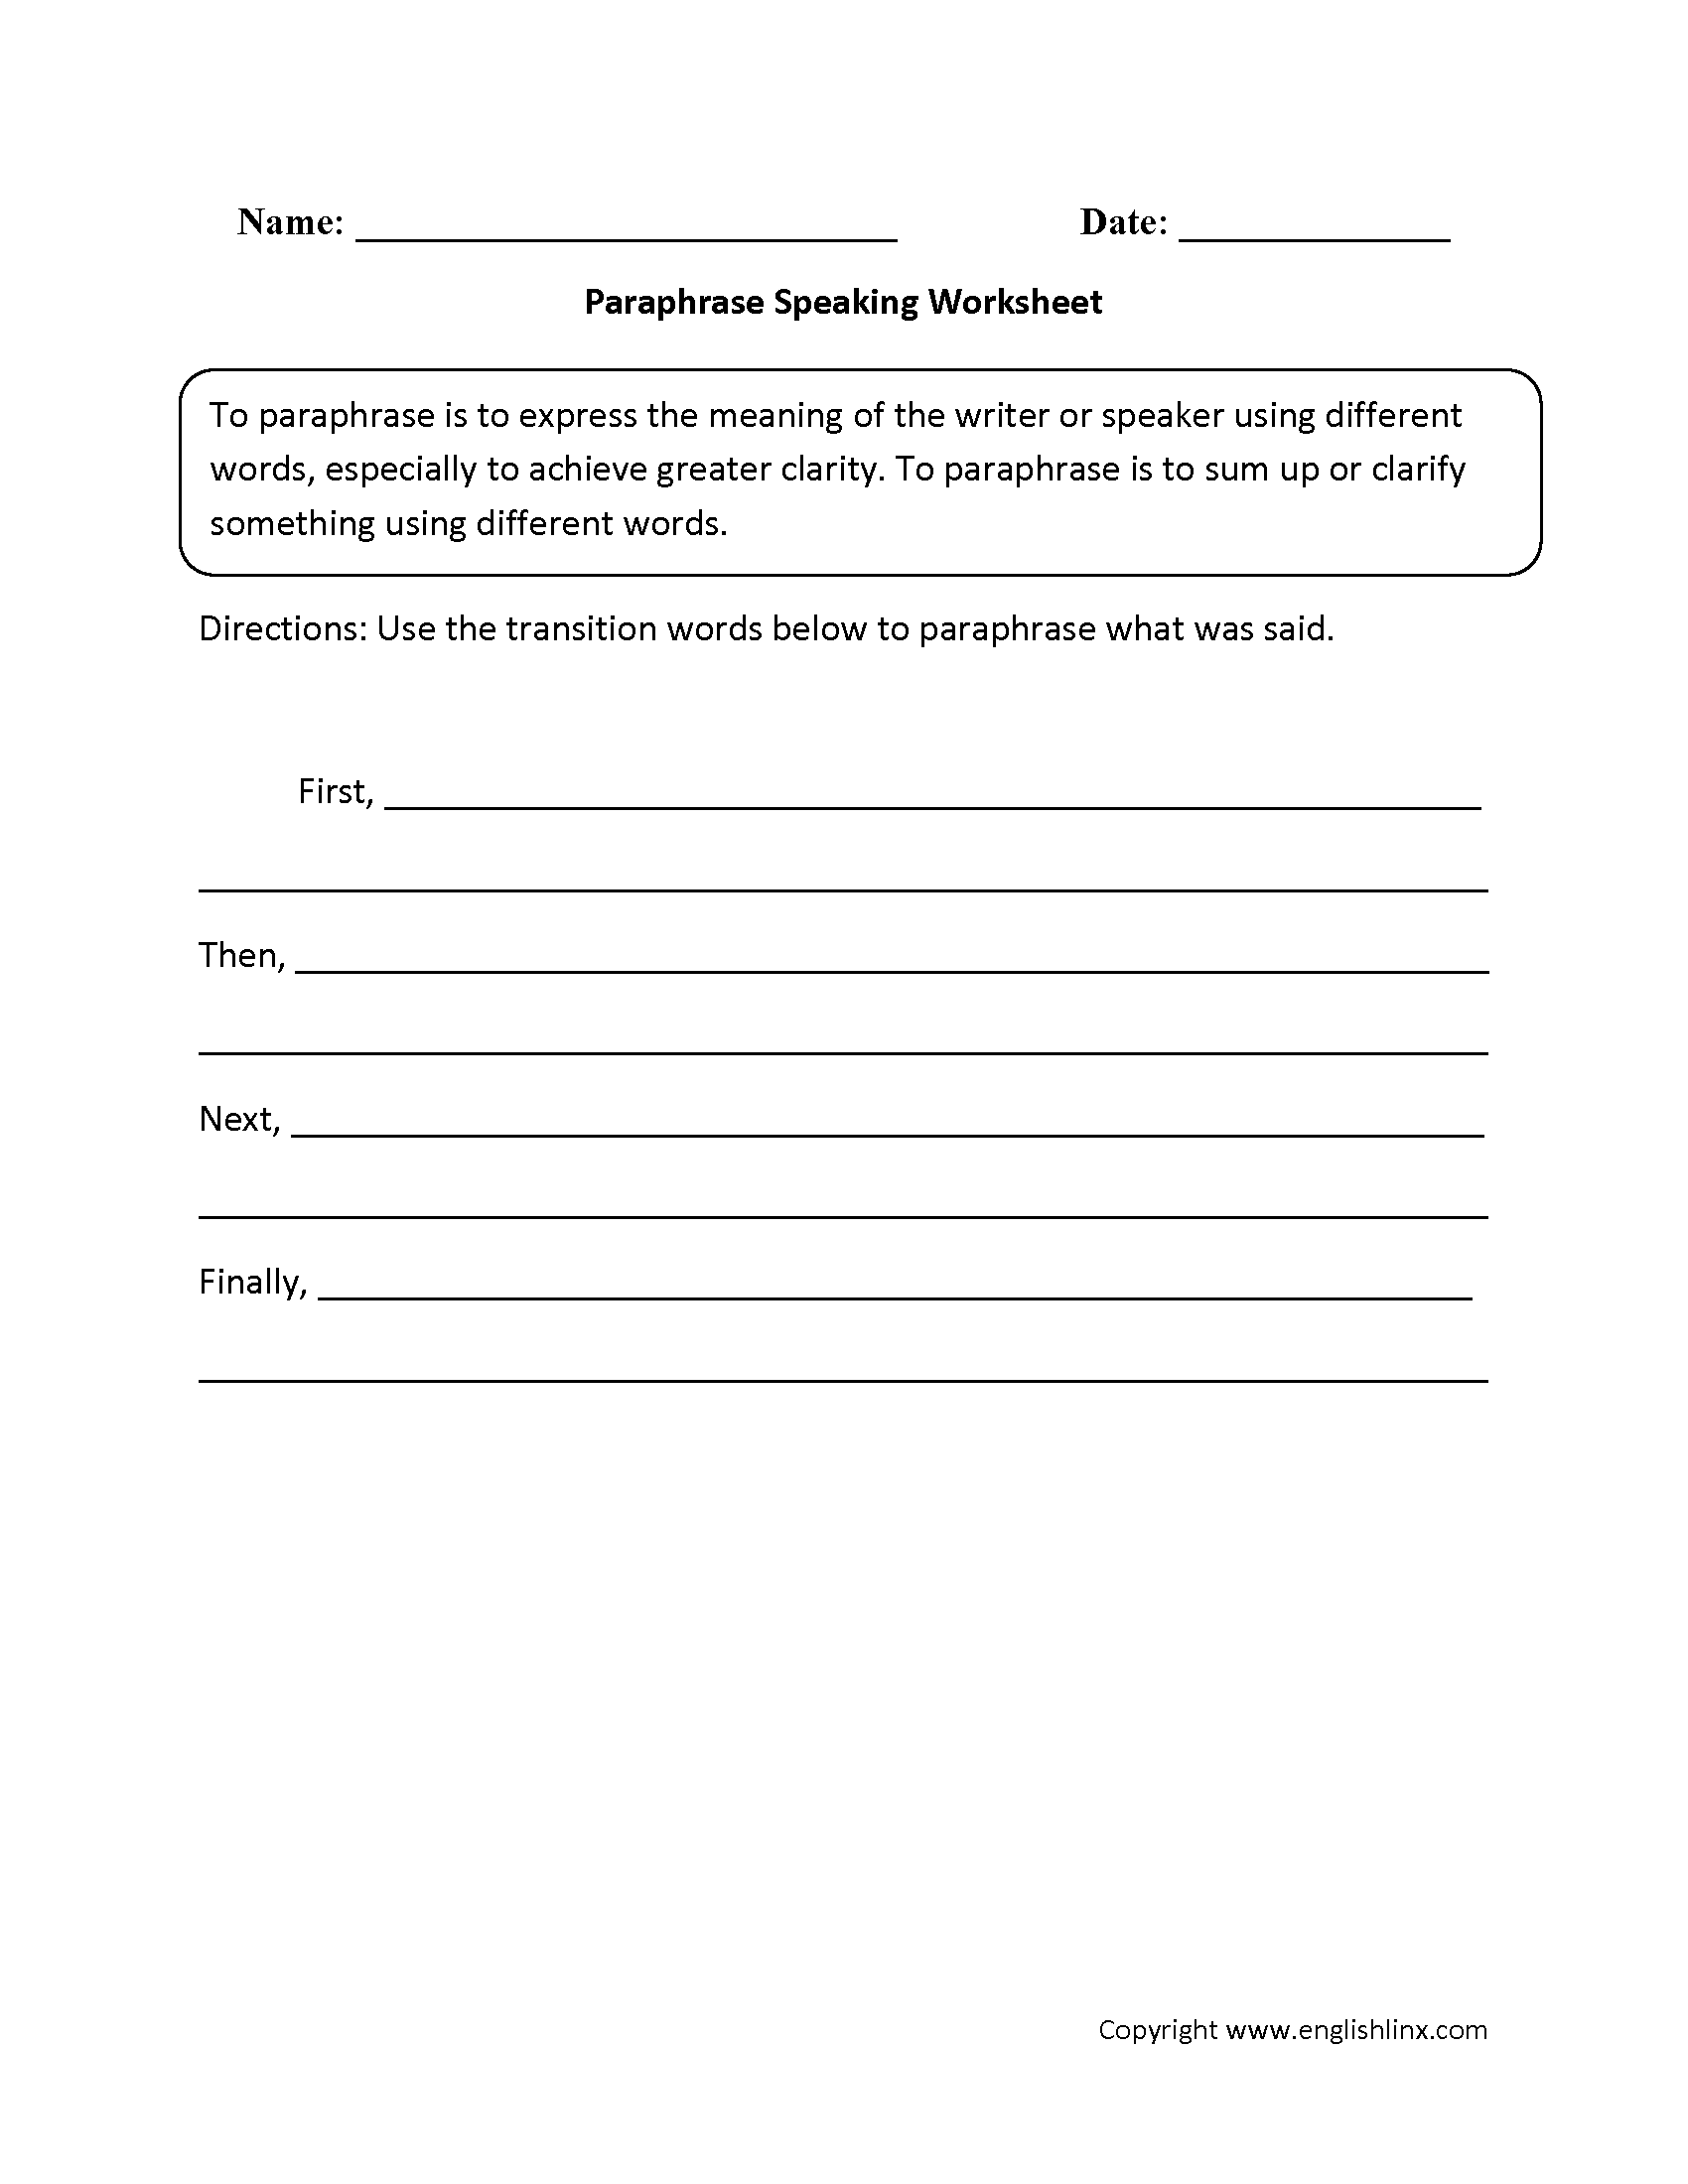 worksheet Paraphrase Practice Worksheet englishlinx com speaking worksheets paraphrase worksheets